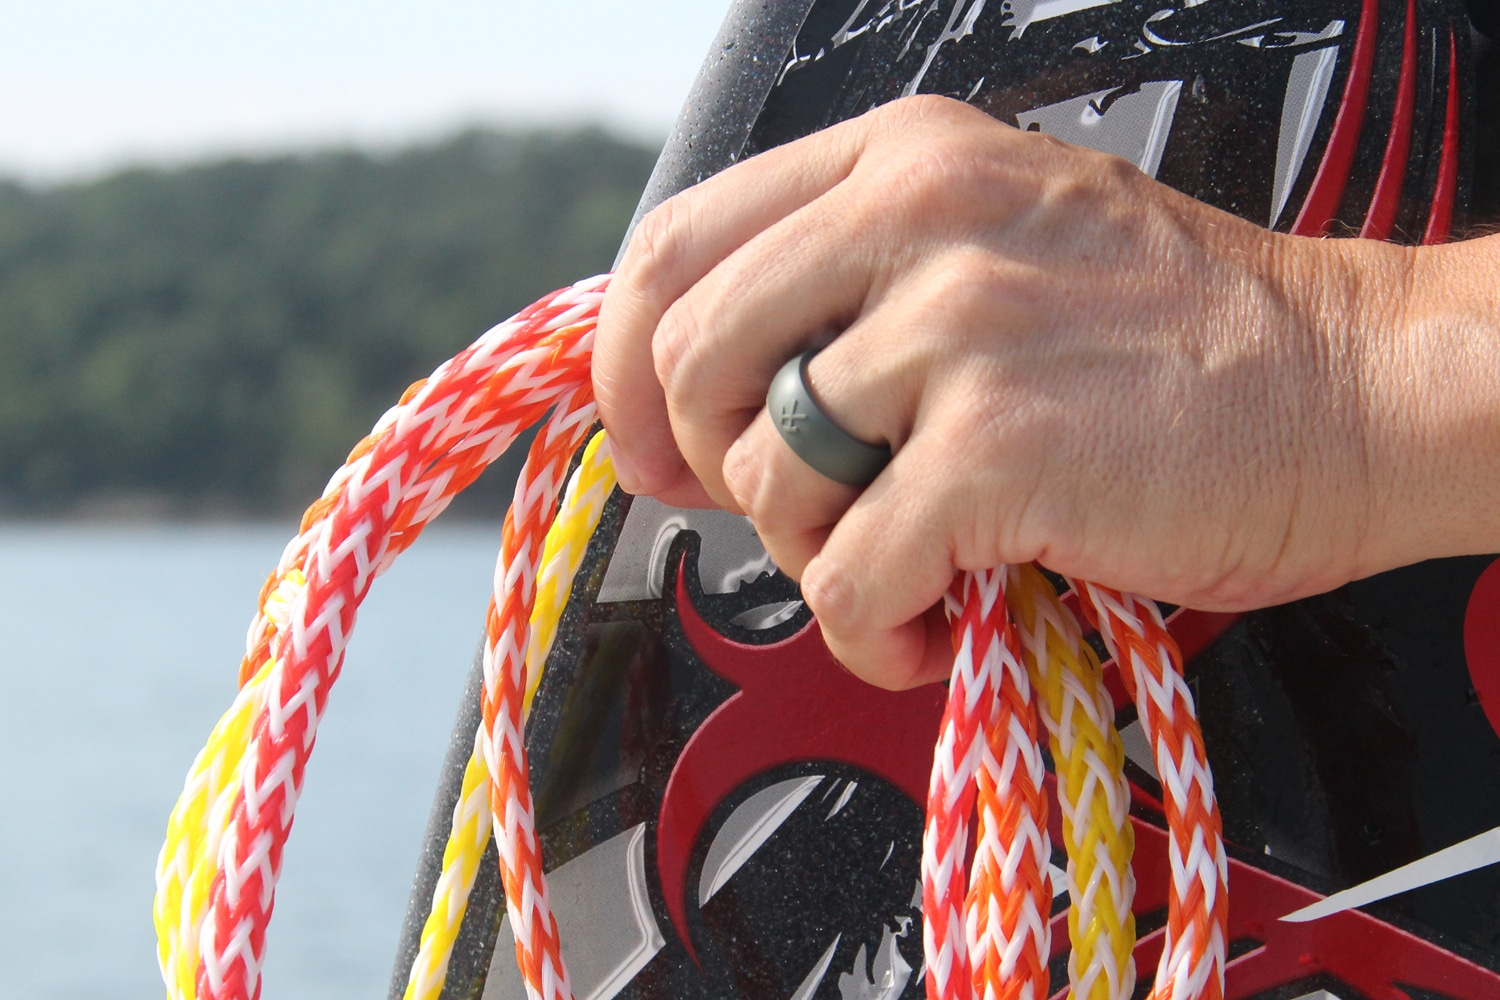 flexible wedding ring flexible wedding ring Water ski with a QALO flexible wedding ring